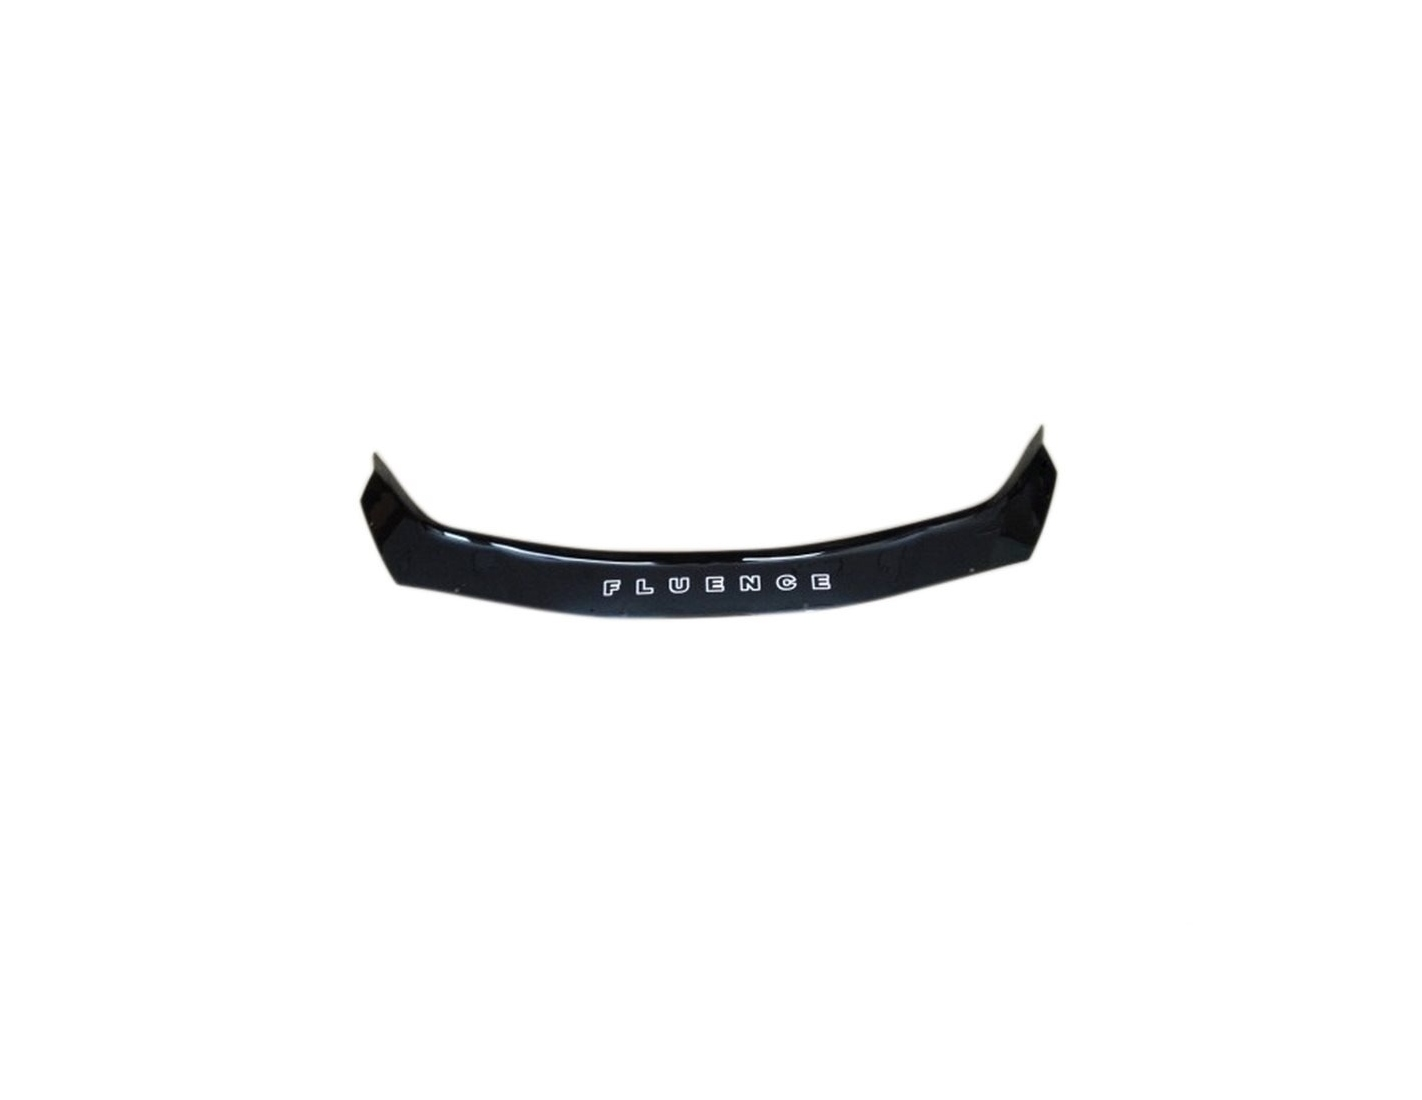 Volkswagen Passat B7 2012-2015 3M 3D Interior Dashboard Trim Kit ...